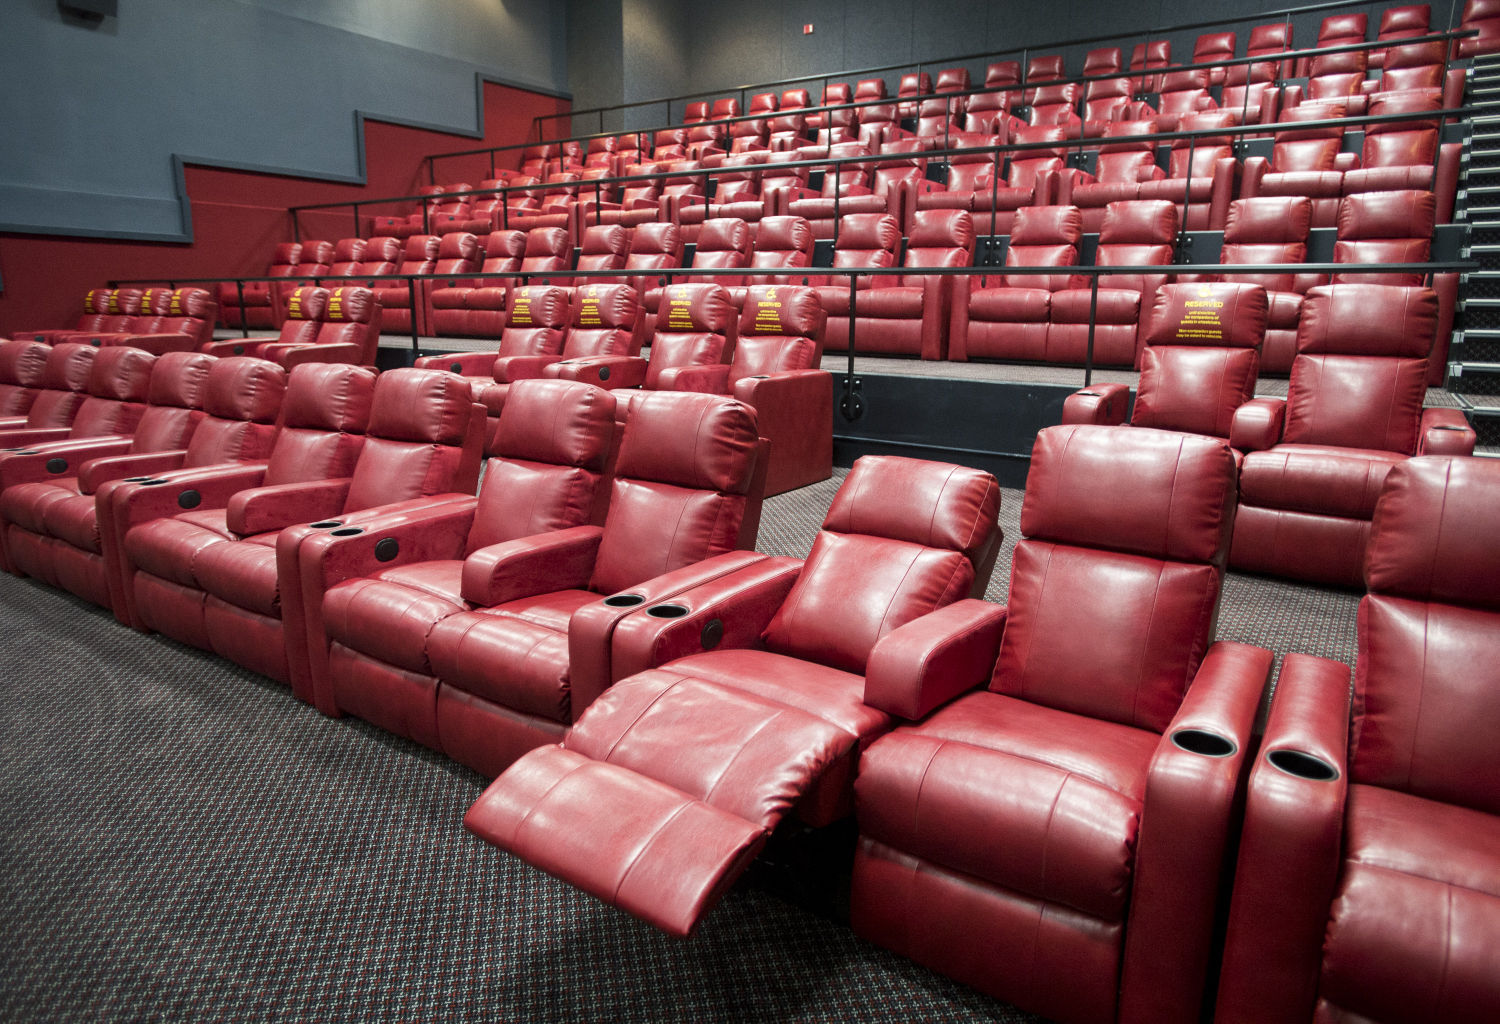 Reclining Chair Movie Theater Marcus To Remodel The Grand Add Recliners To All Auditoriums